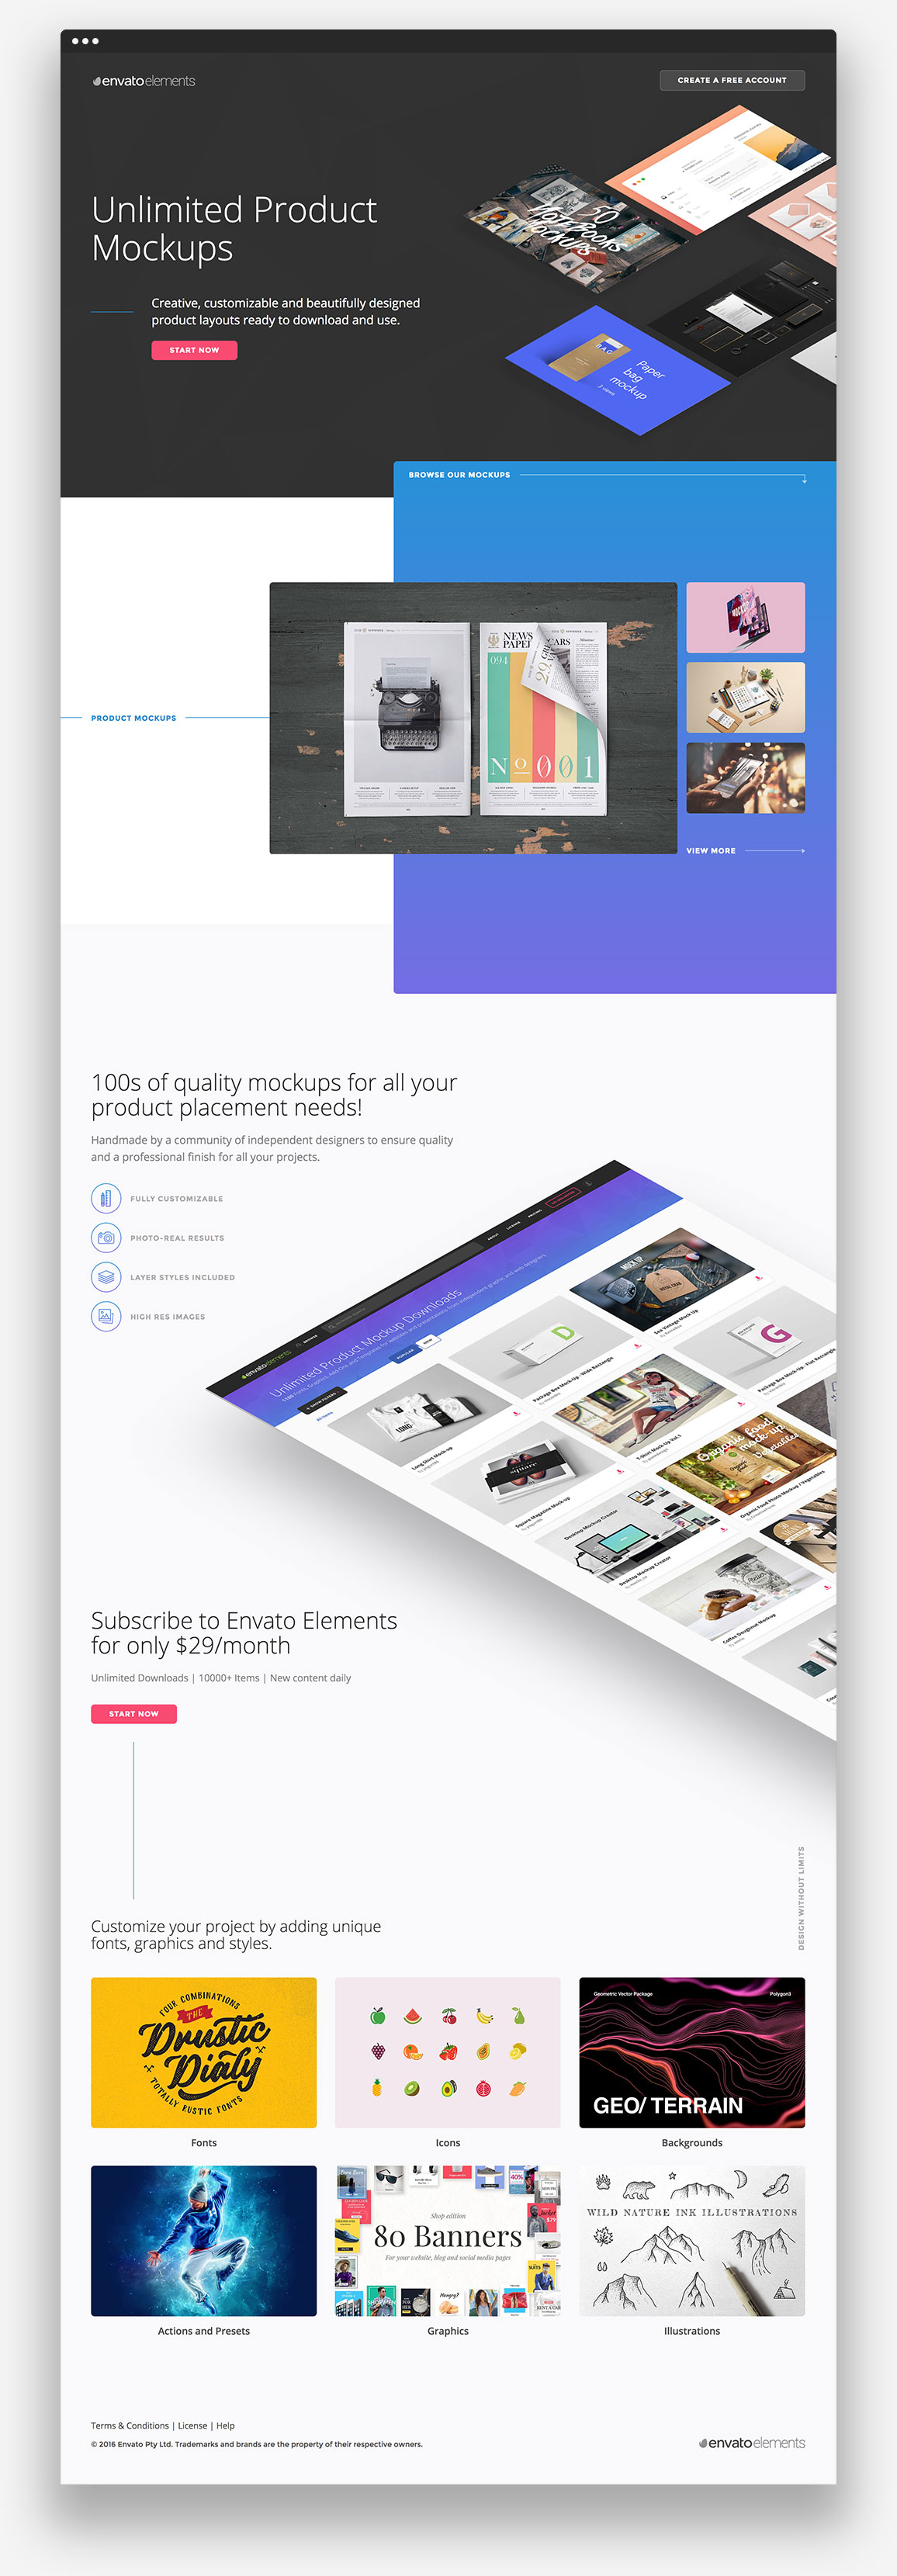 Envato-Elements-Landing-Page-browser